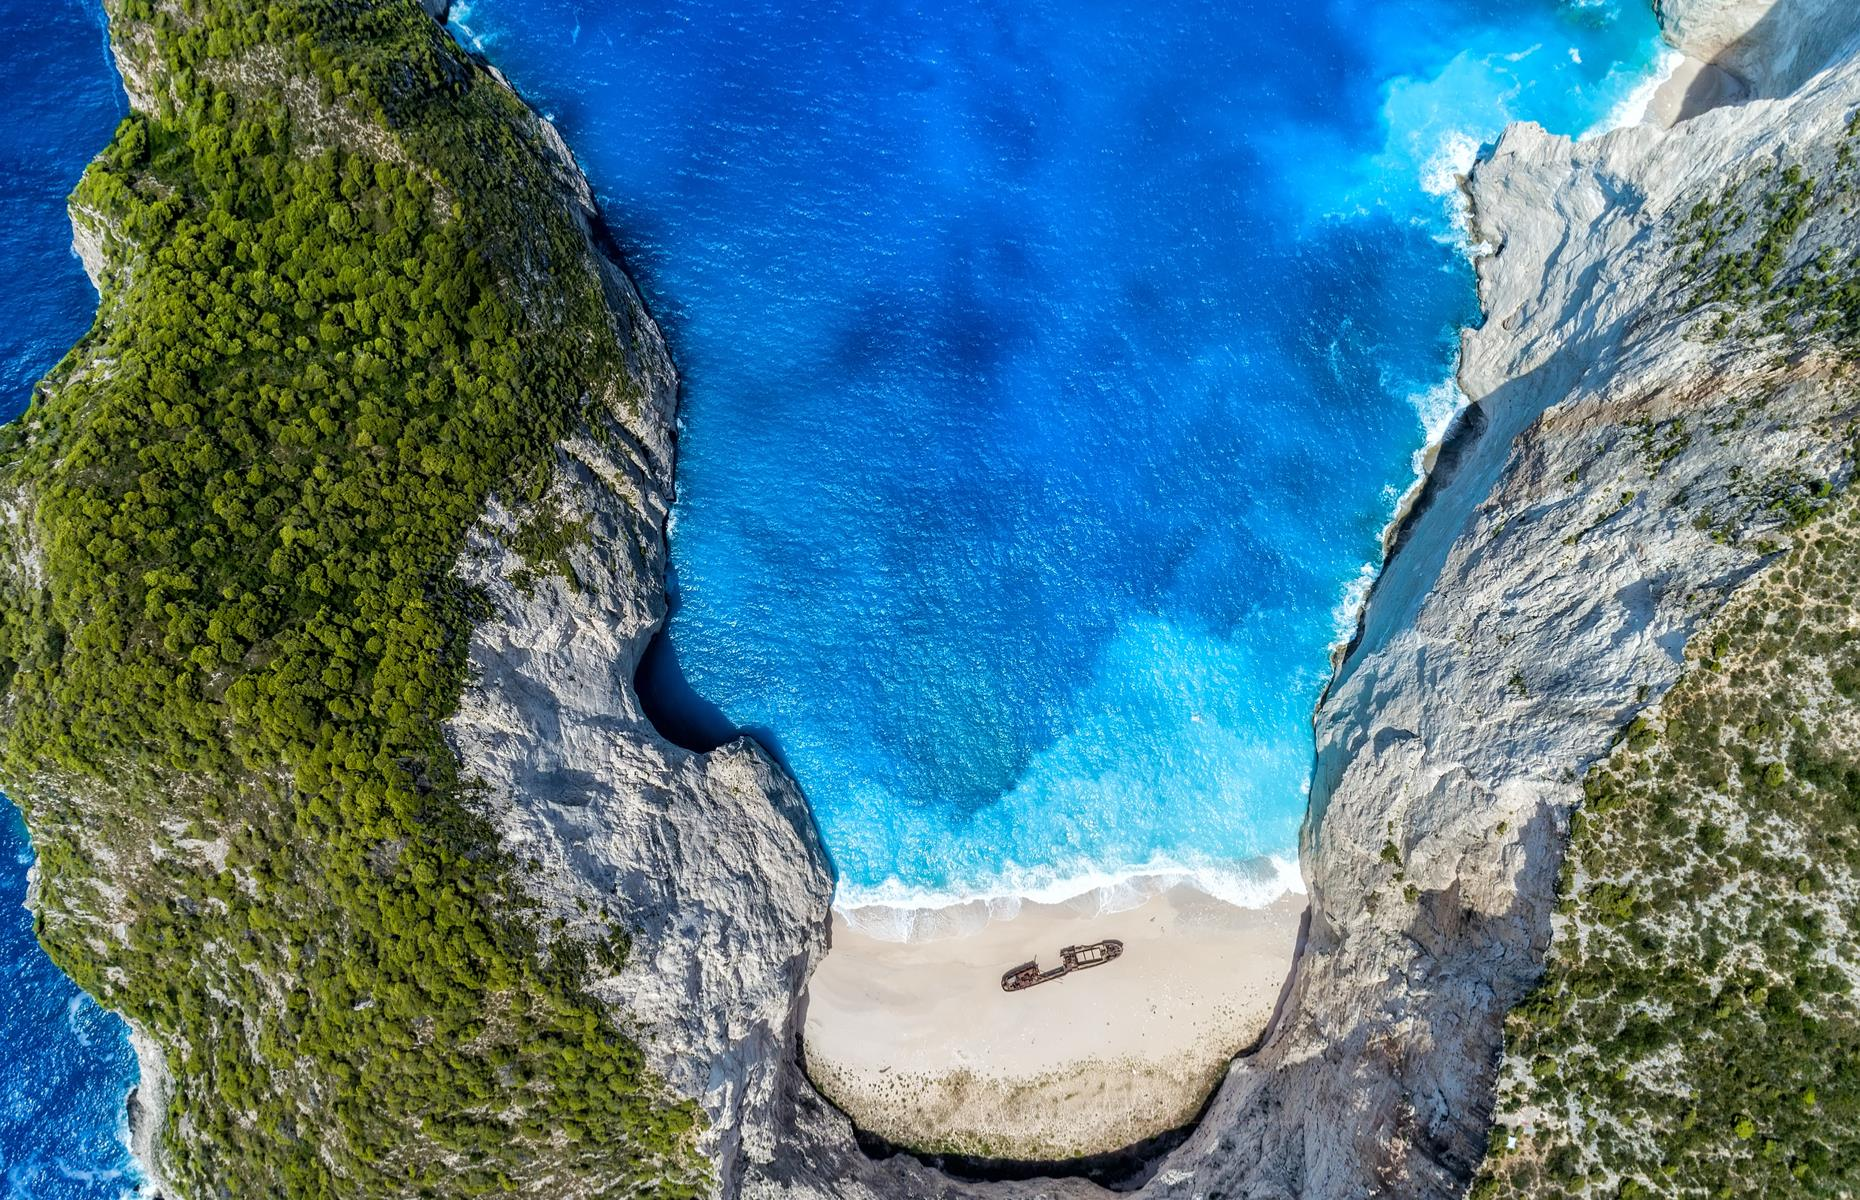 Slide 41 of 43: Green-topped cliffs, cobalt waters and pale gold sands characterize this strand on the Greek island of Zakynthos. But Navagio is best known for the ambient shipwreck settled on the sand, earning it the moniker of 'Shipwreck Beach'. Once sailed by smugglers, the ship is thought to have been washed up in the 1980s – here it appears as a mere speck on the sand, protected by arching limestone crags.